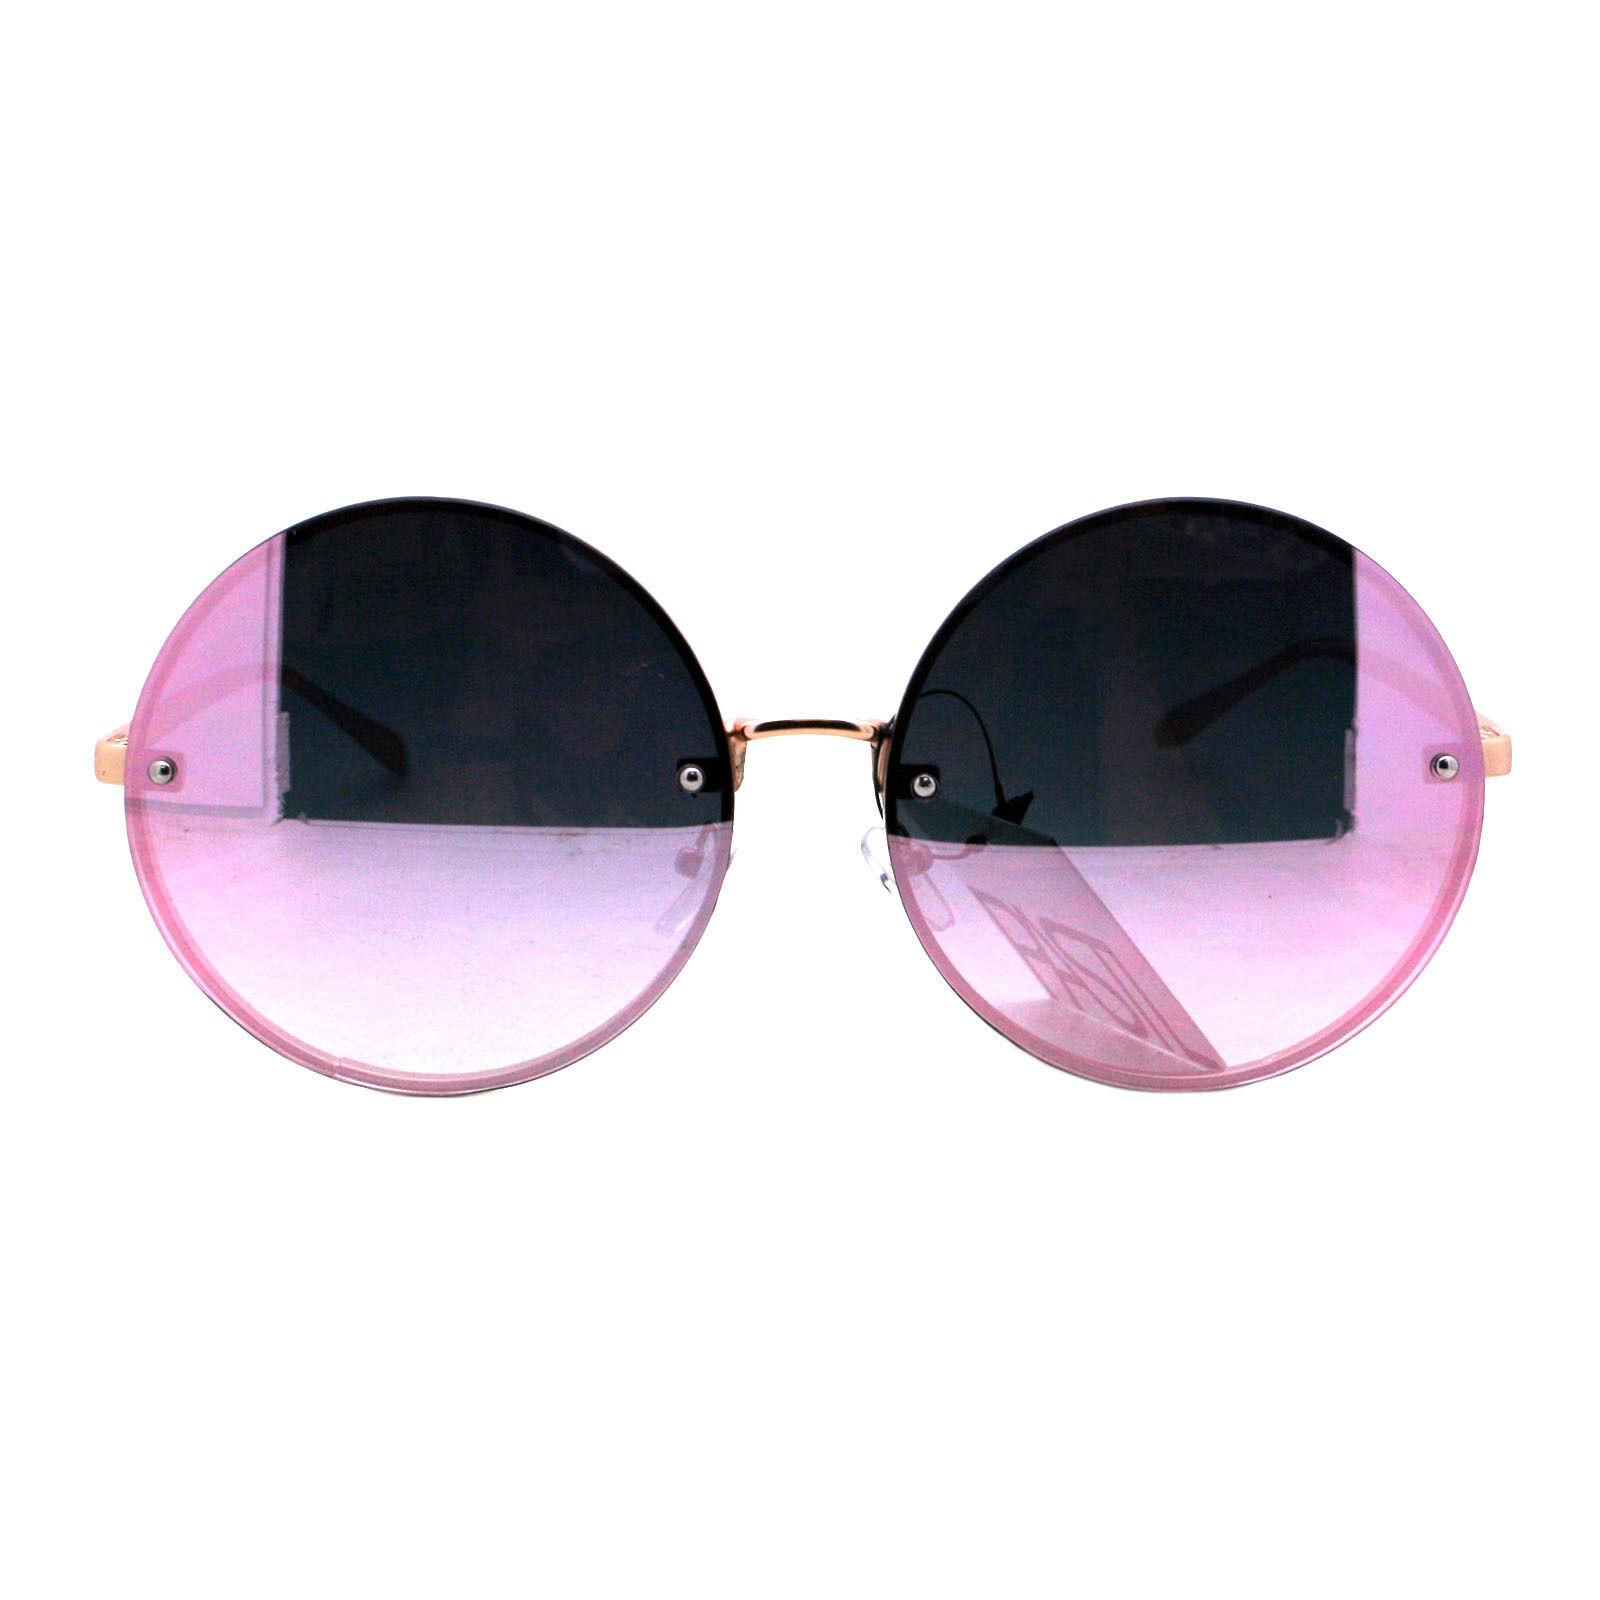 PASTL Super Oversized Round Sunglasses Womens Pink Mirror Lens UV 400 image 9